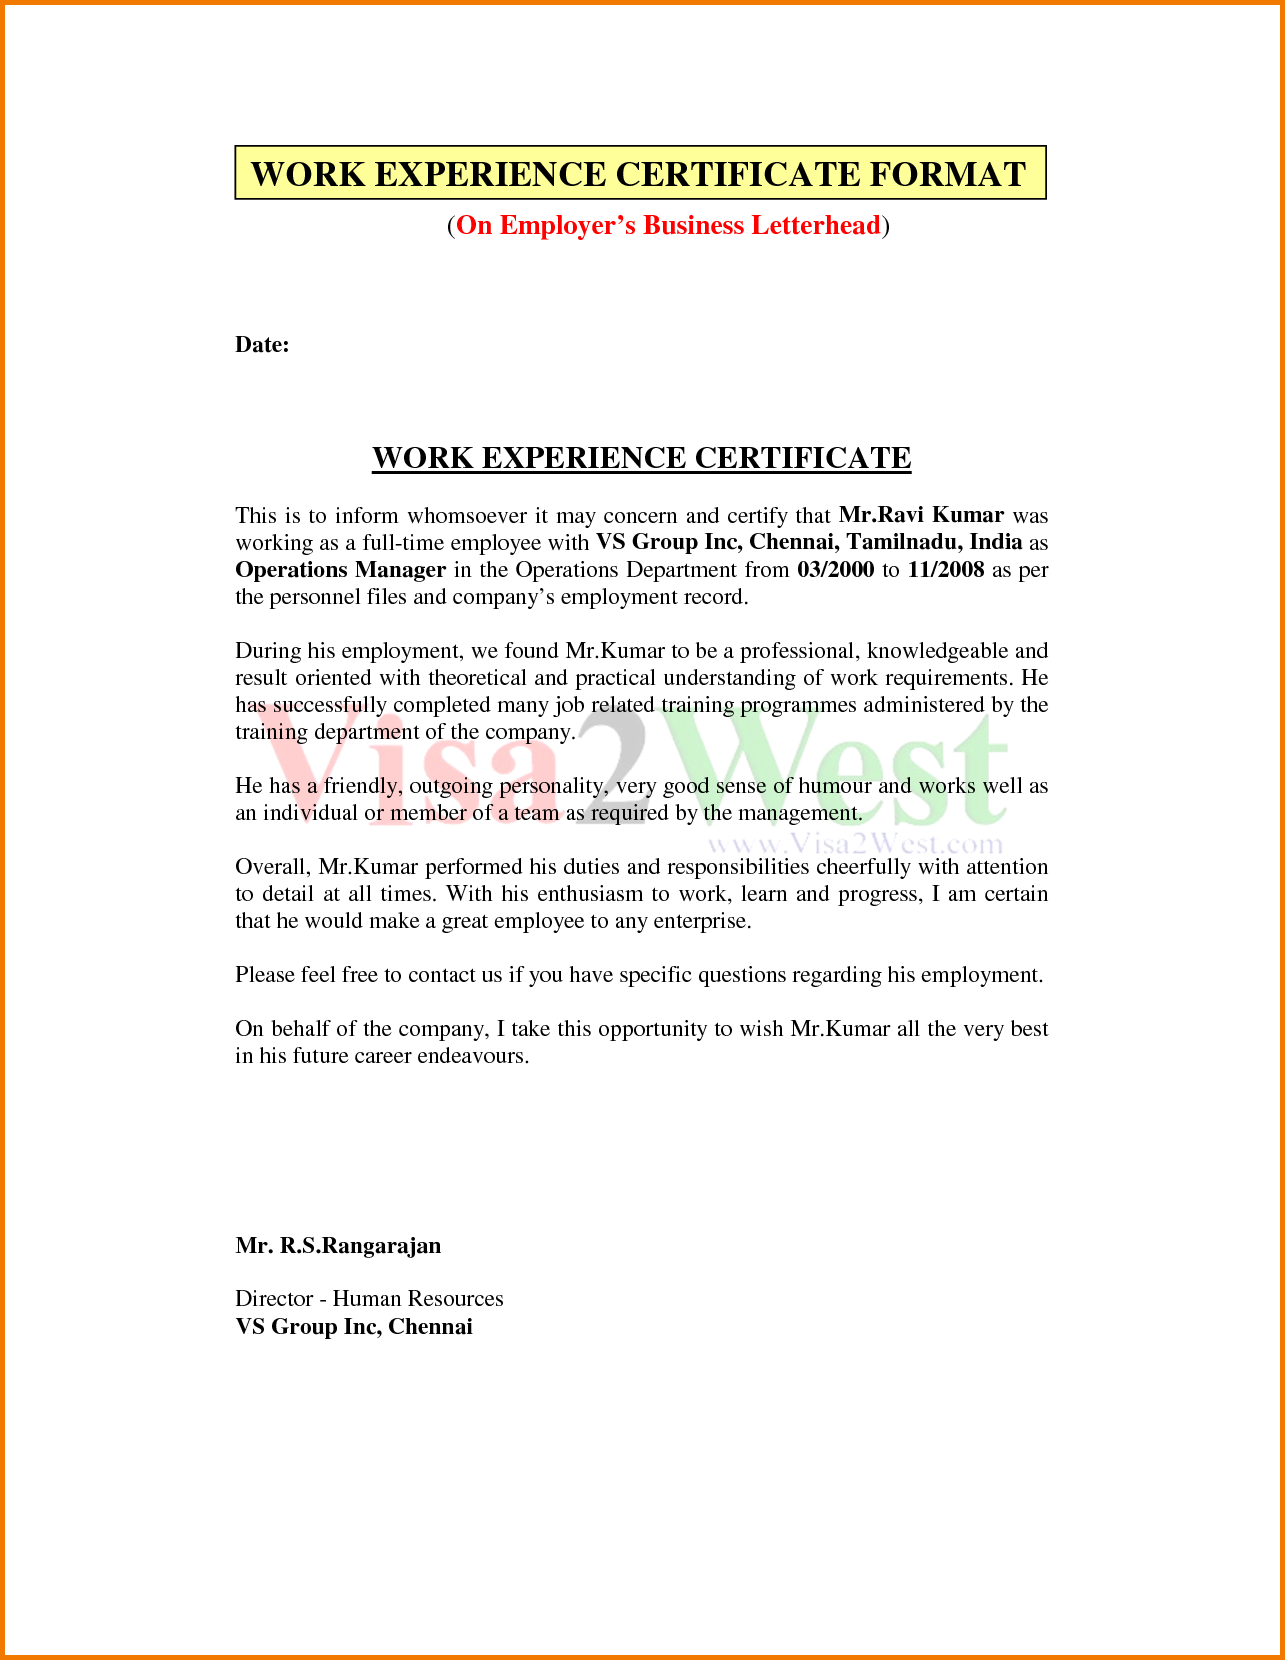 Letter format pdf financial statement form experience certificate letter format pdf financial statement form experience certificate application santorini laundry yelopaper Image collections